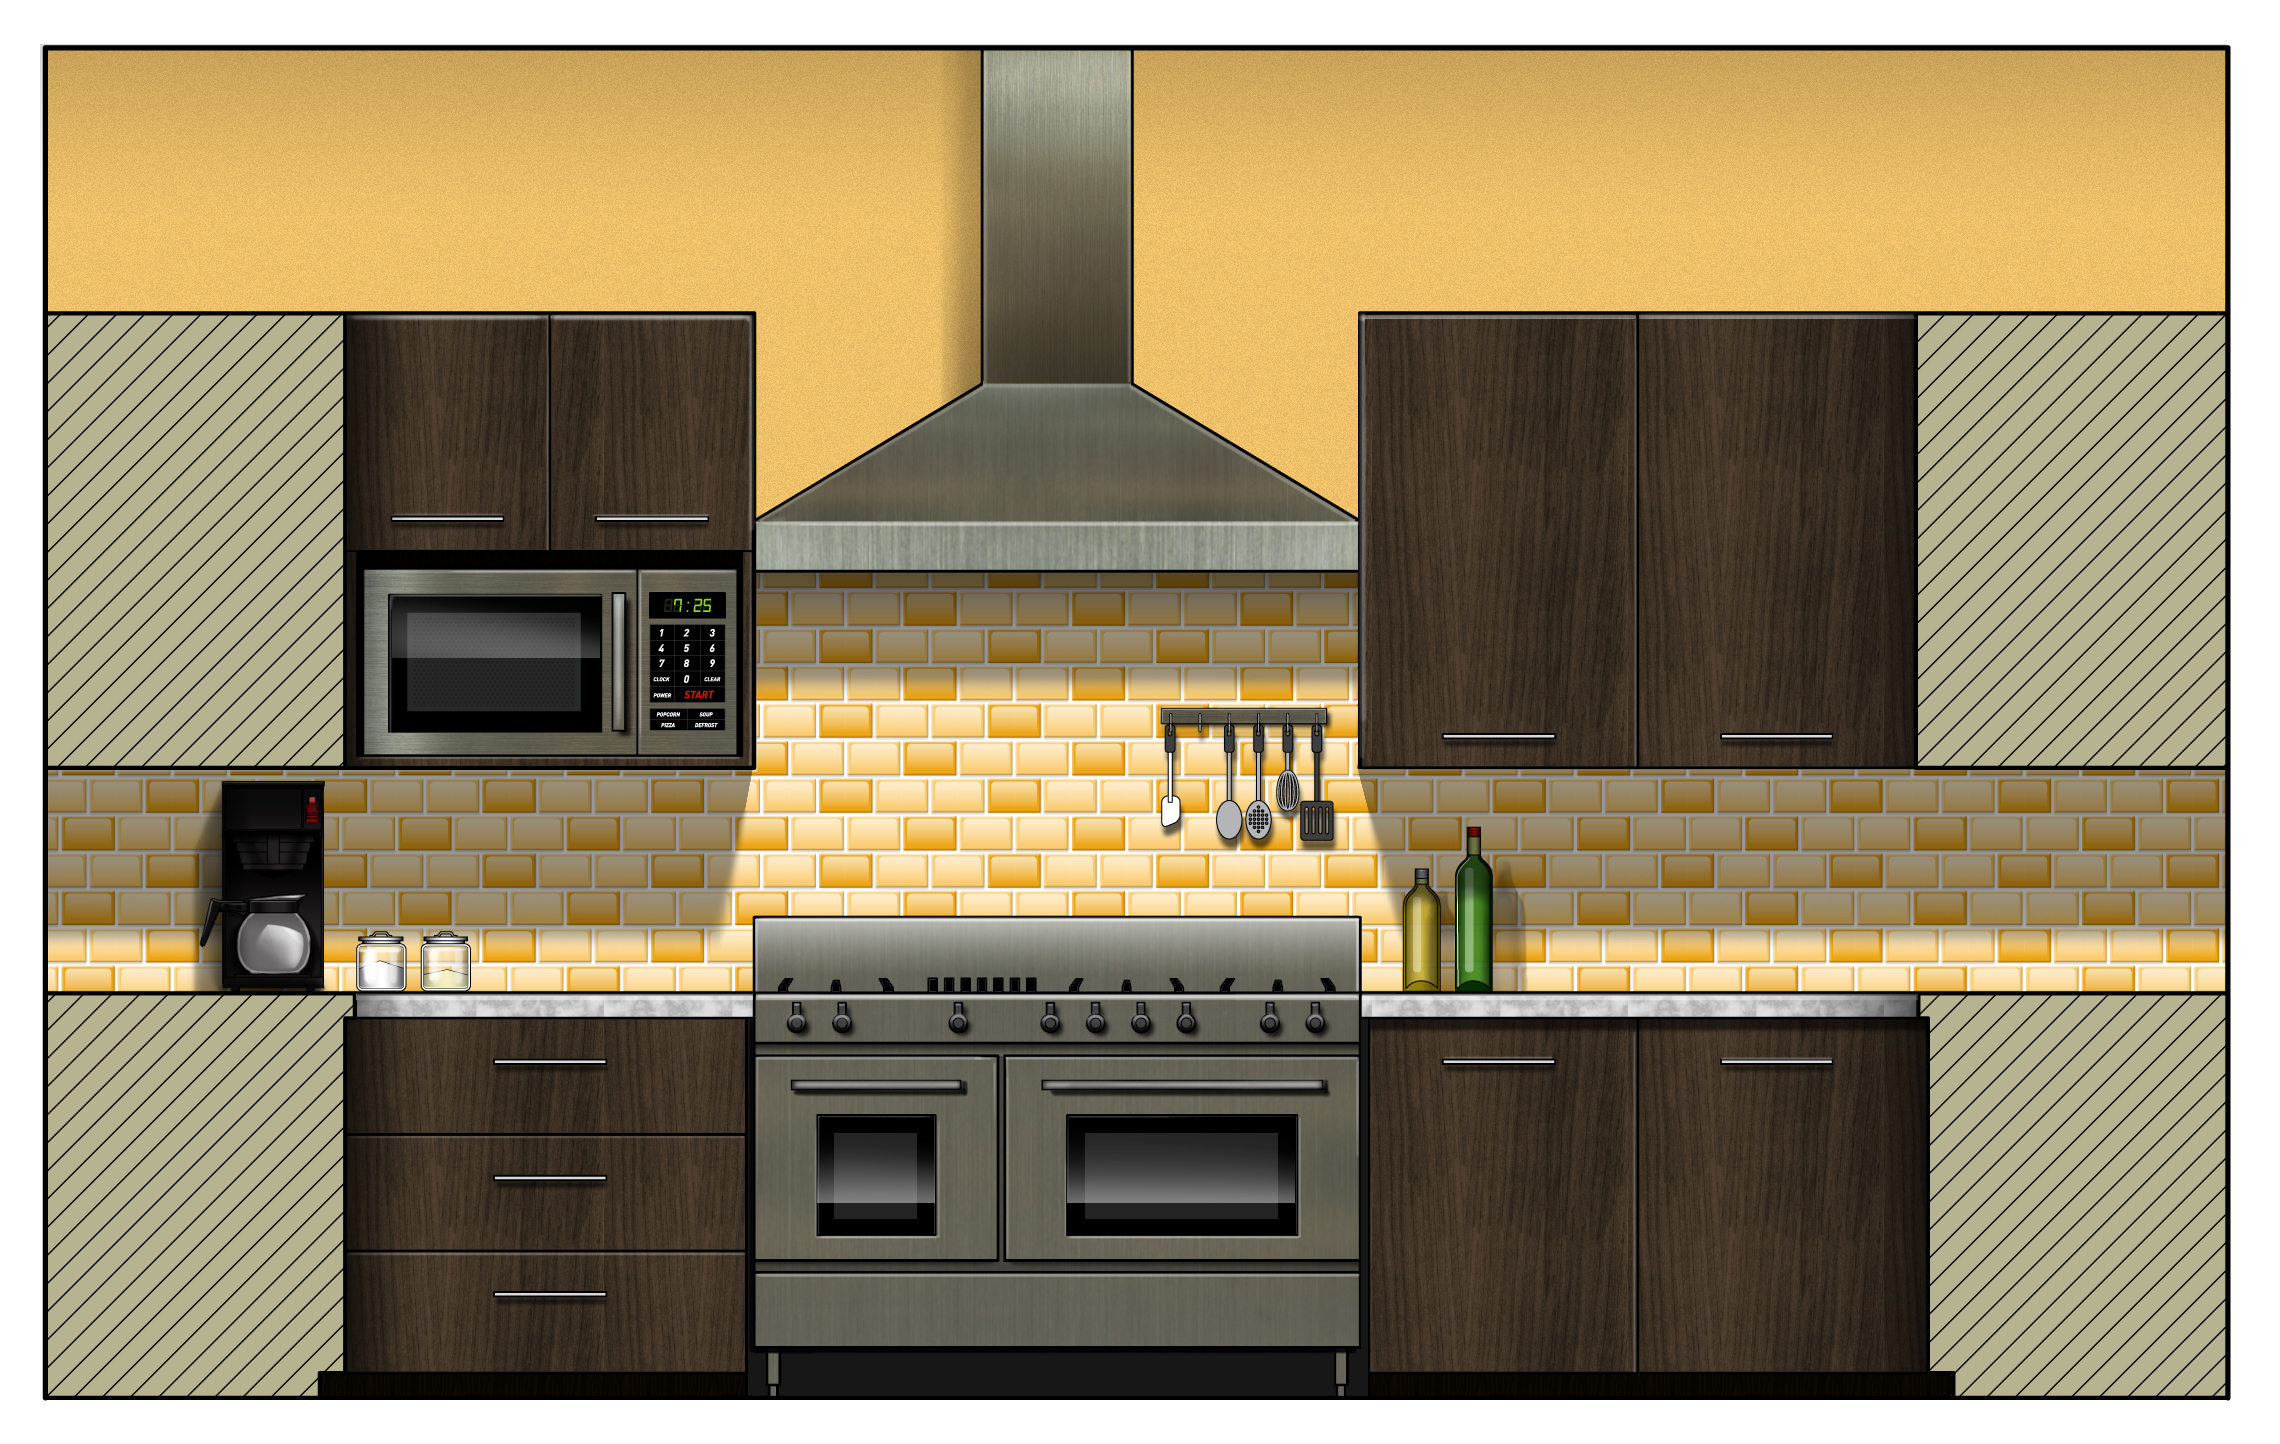 Cad Kitchen Design Home Decor - Cad For Kitchen Design